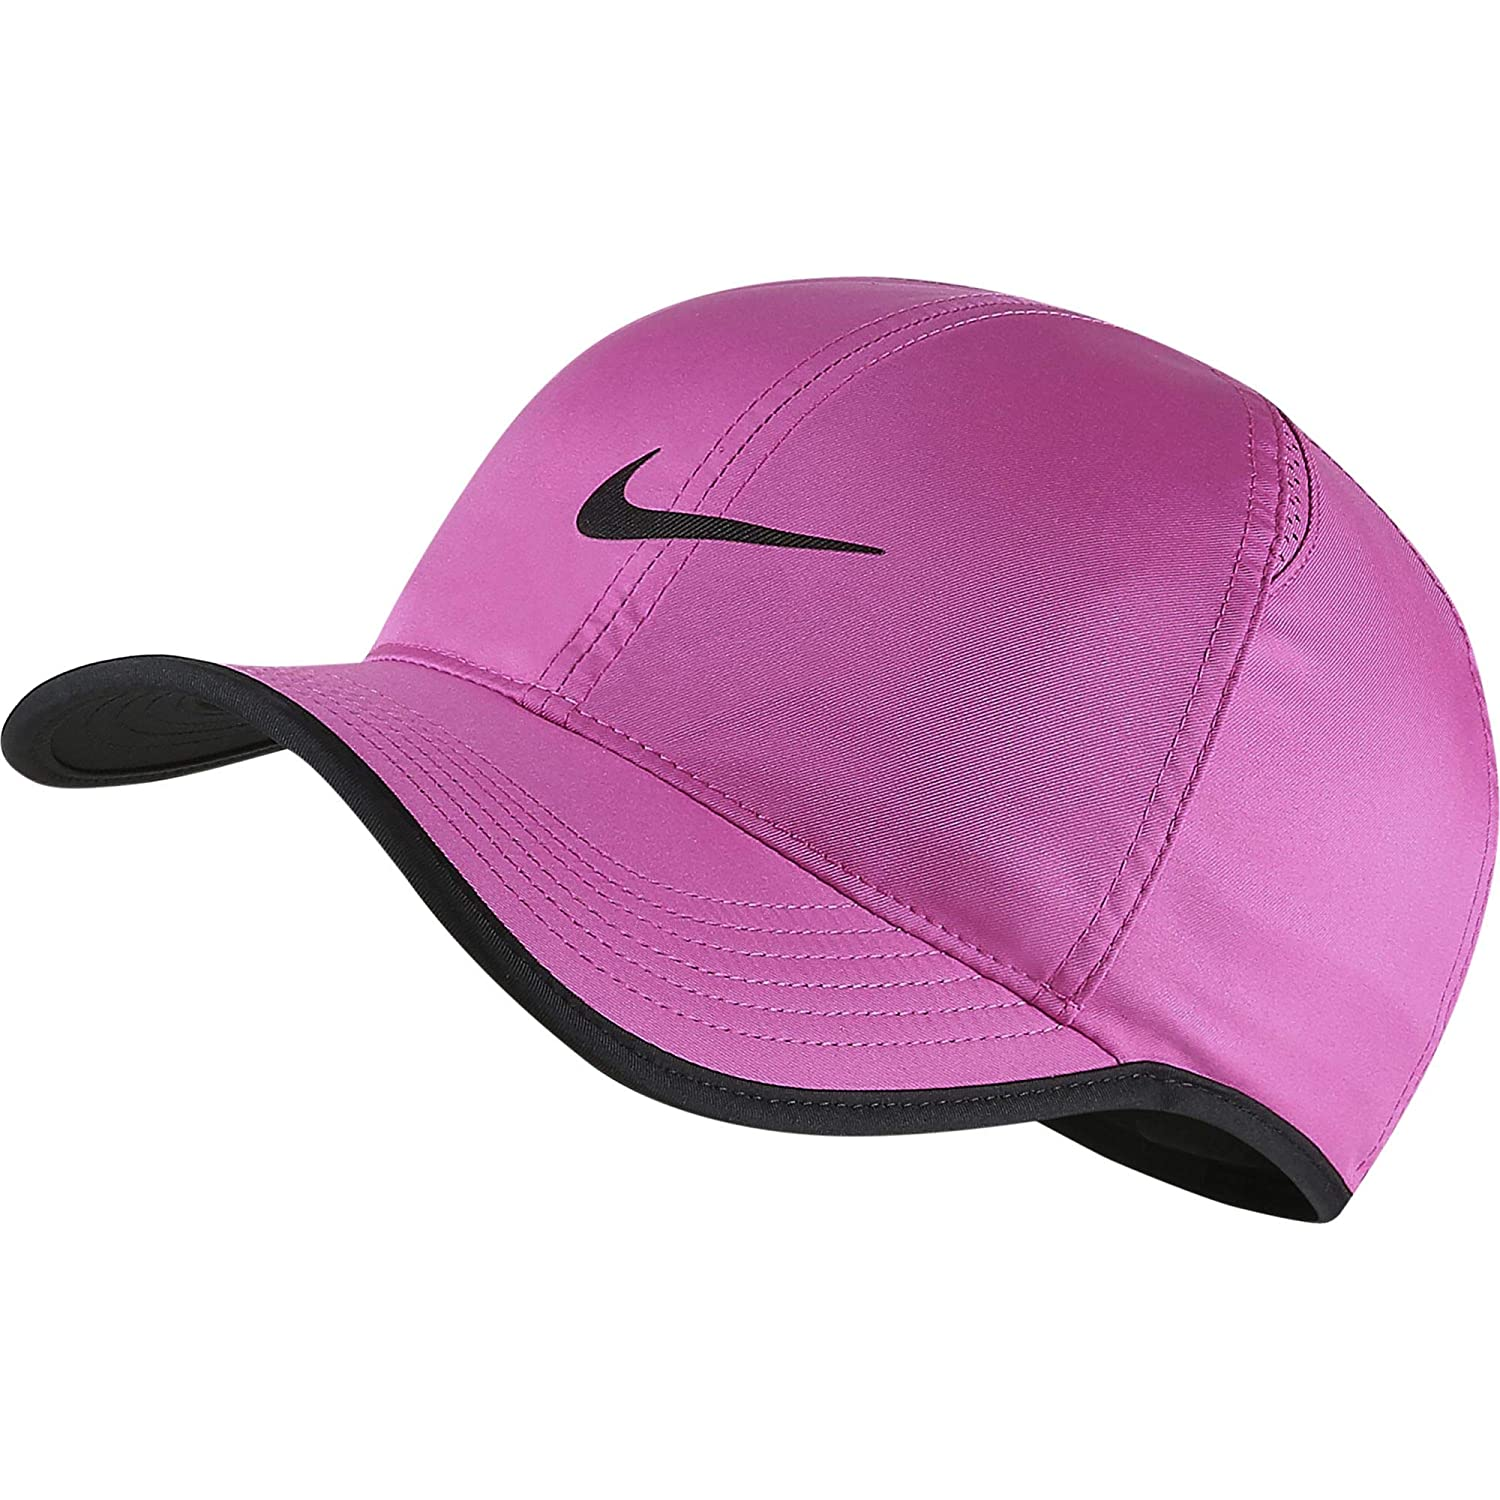 Nike Feather Light Cap 9a8d401eec4